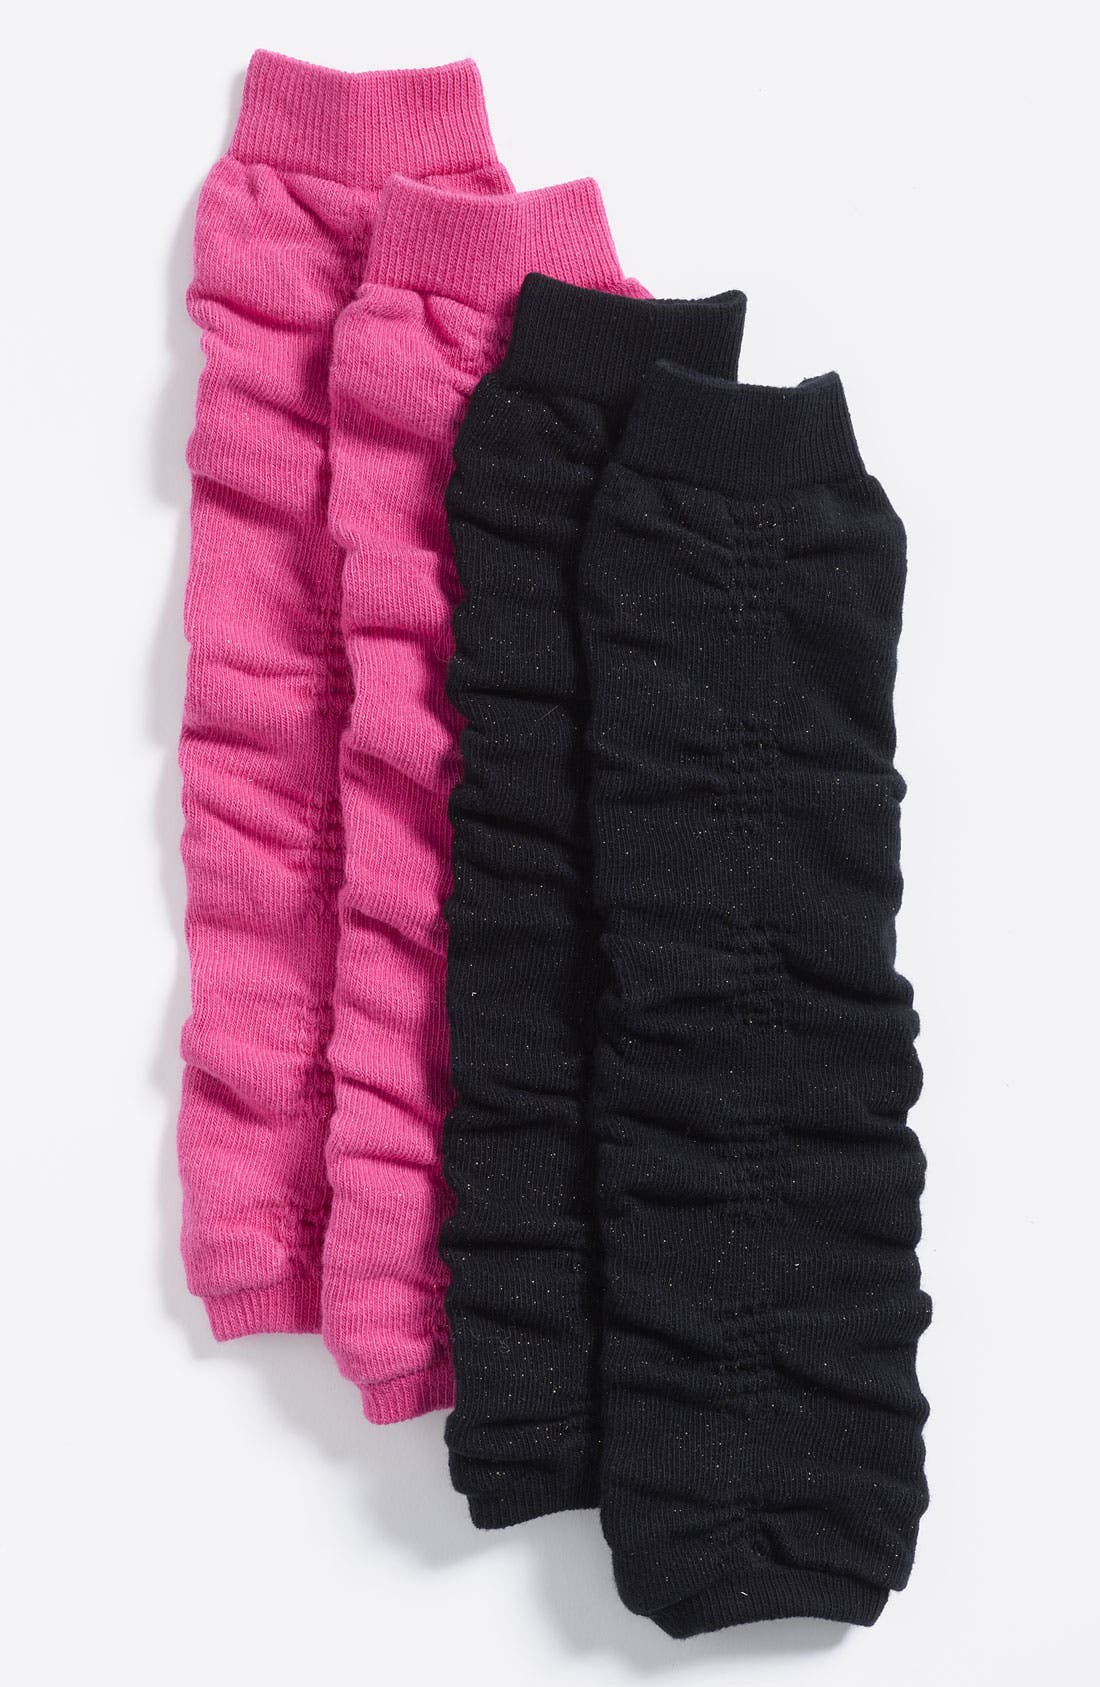 Alternate Image 1 Selected - Nordstrom Leg Warmers (2-Pack) (Girls)